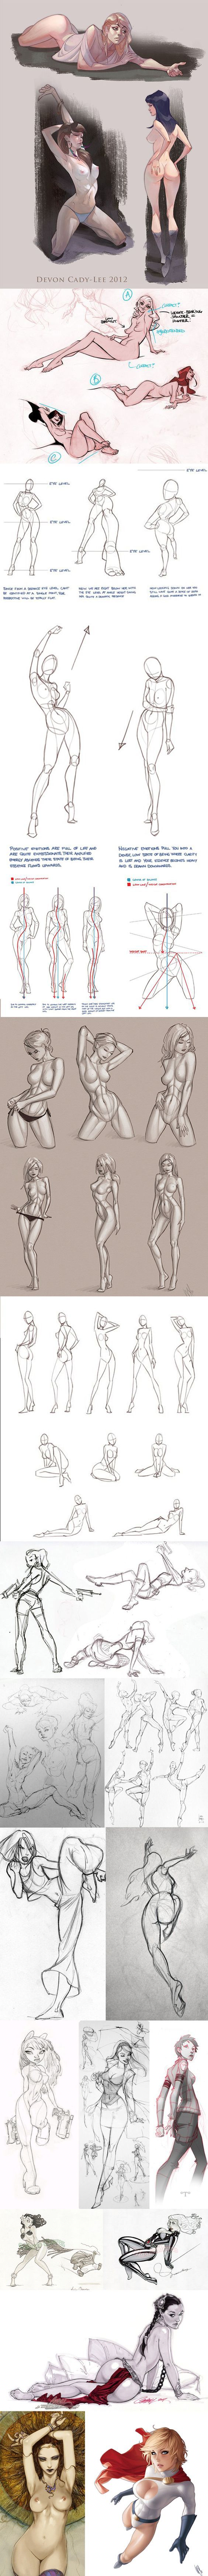 Some great anatomy tips, poses and overviews from Devon Cady-Lee ...